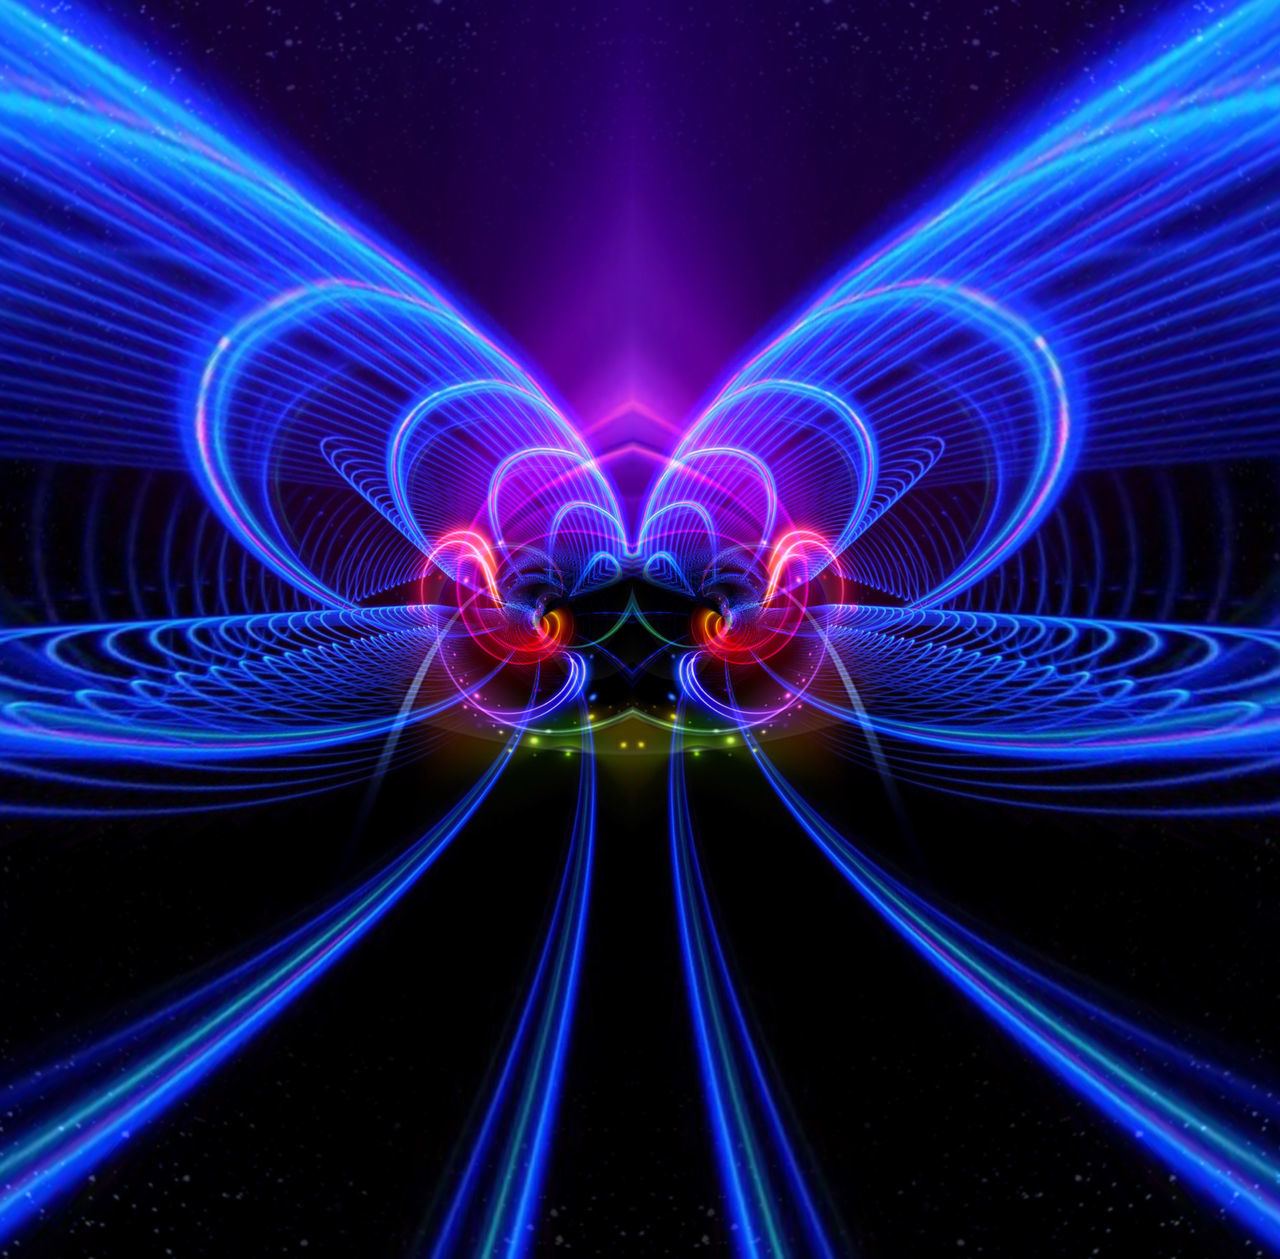 illuminated, technology, glowing, abstract, pattern, light - natural phenomenon, long exposure, connection, blue, motion, futuristic, night, communication, light trail, multi colored, no people, light beam, bandwidth, indoors, black background, electricity